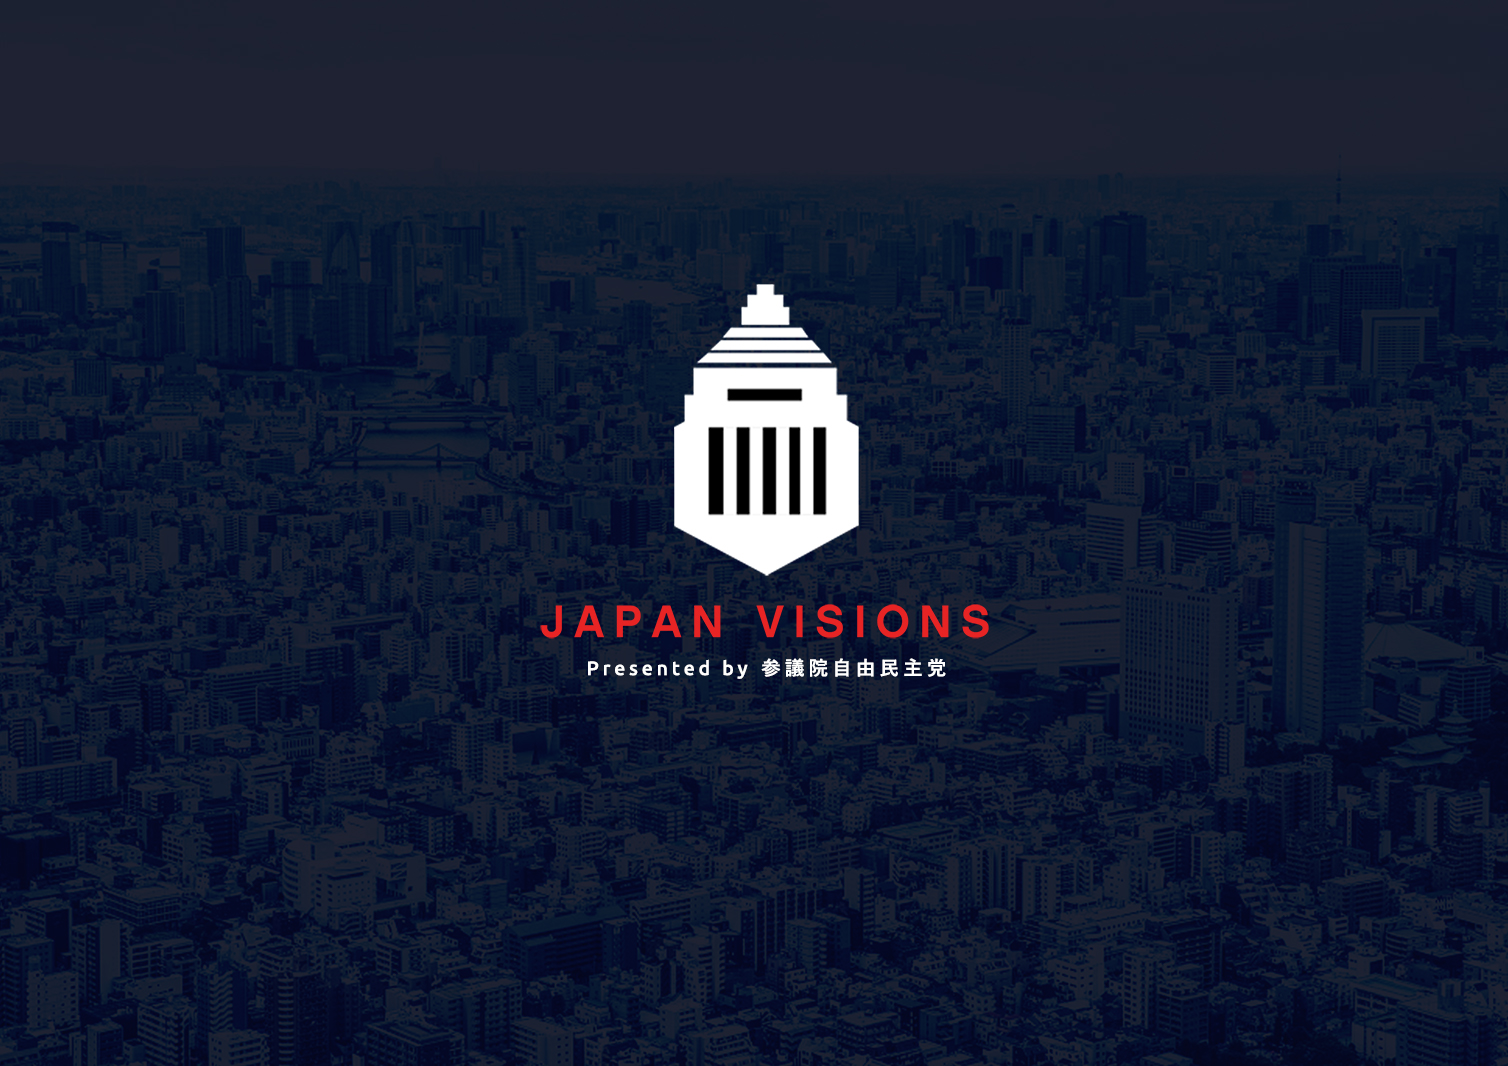 banner light - JAPAN VISIONS presented by 参議院自由民主党  開催!!<br>【7月31日 13:00~】